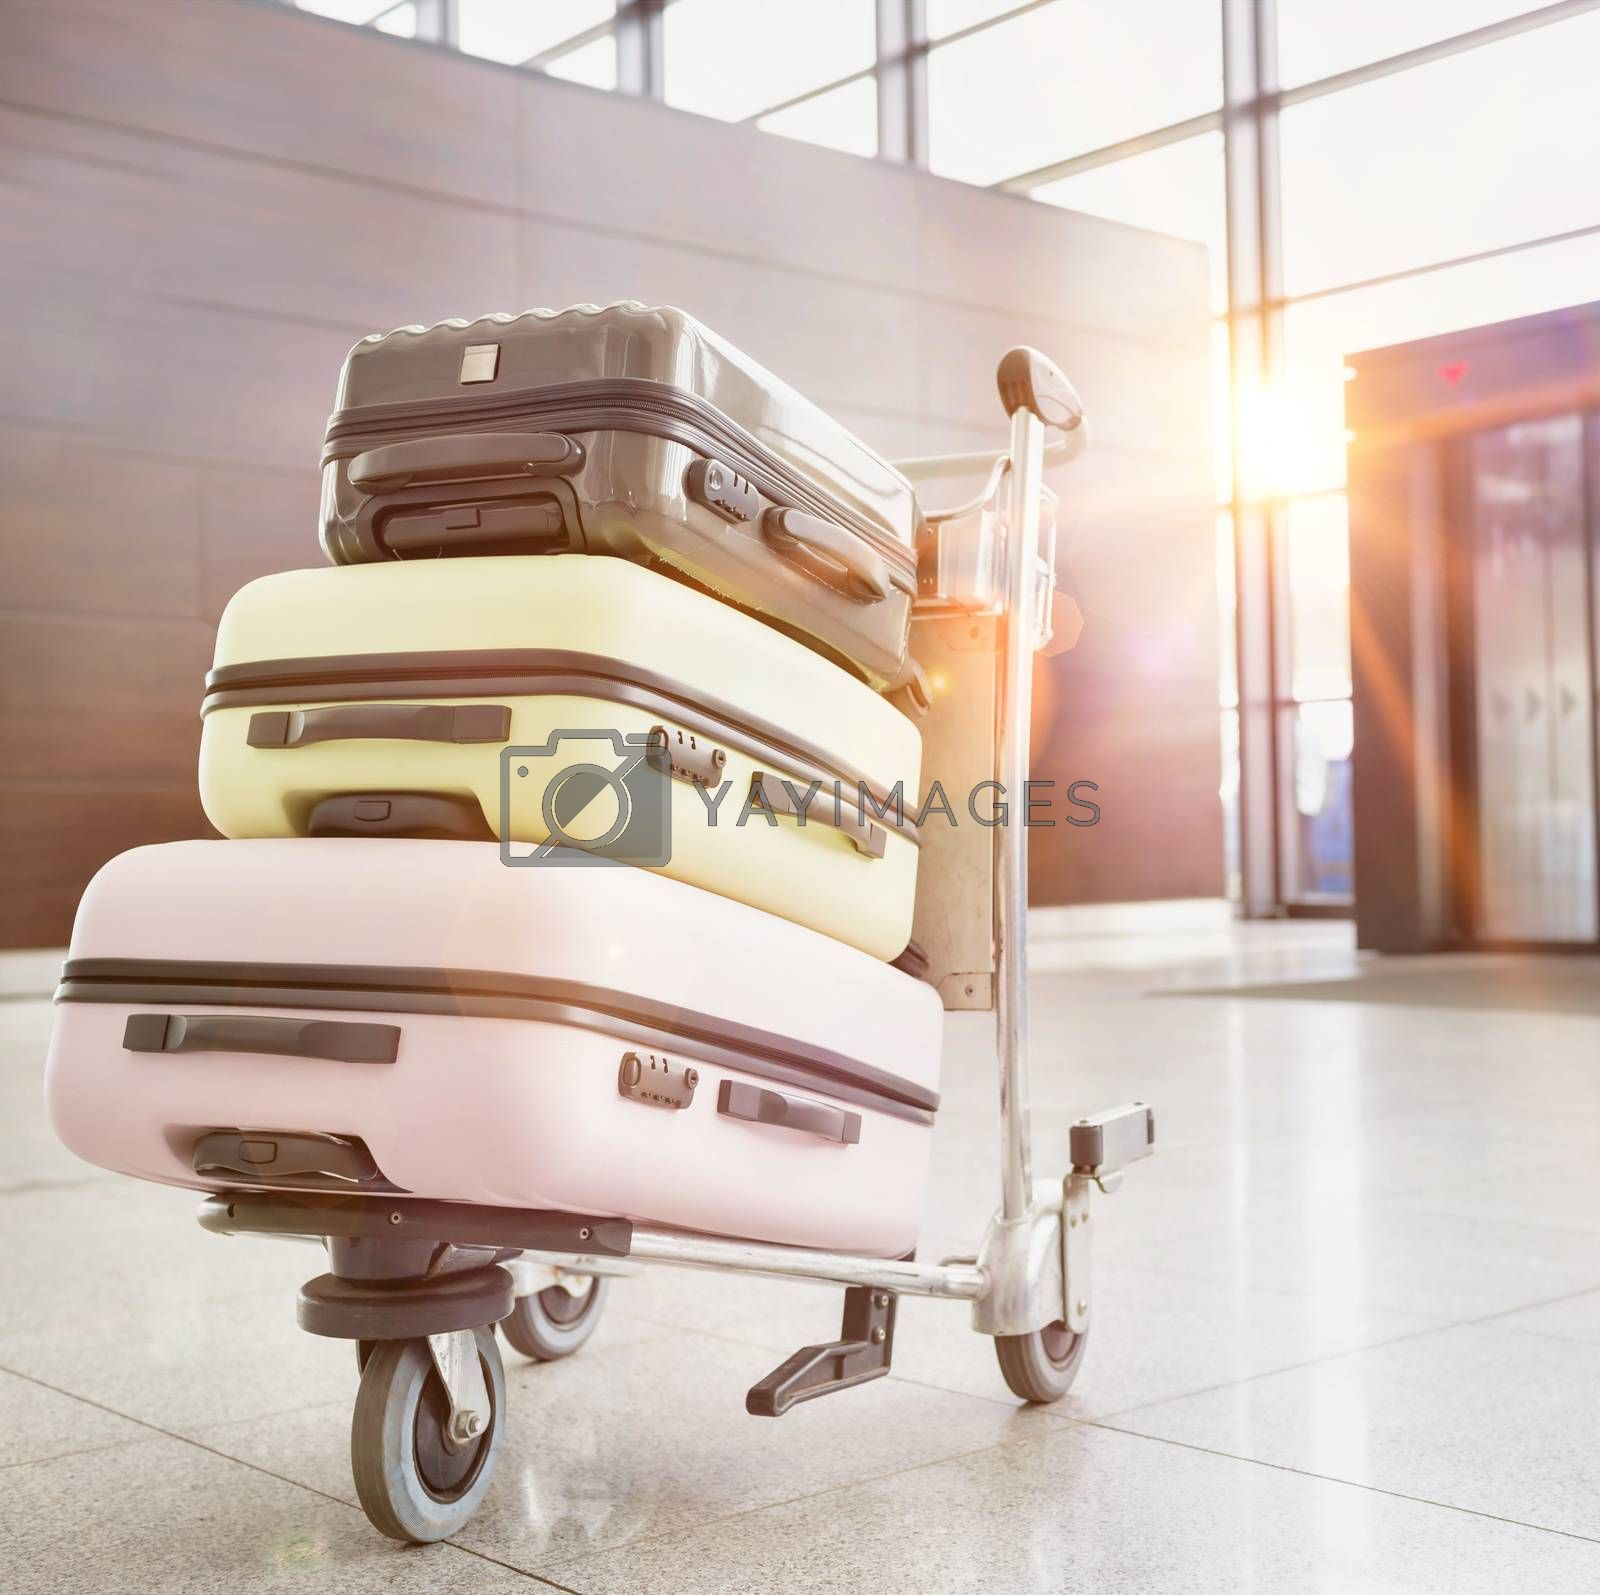 Photo of baggage on cart with lens flare by moodboard